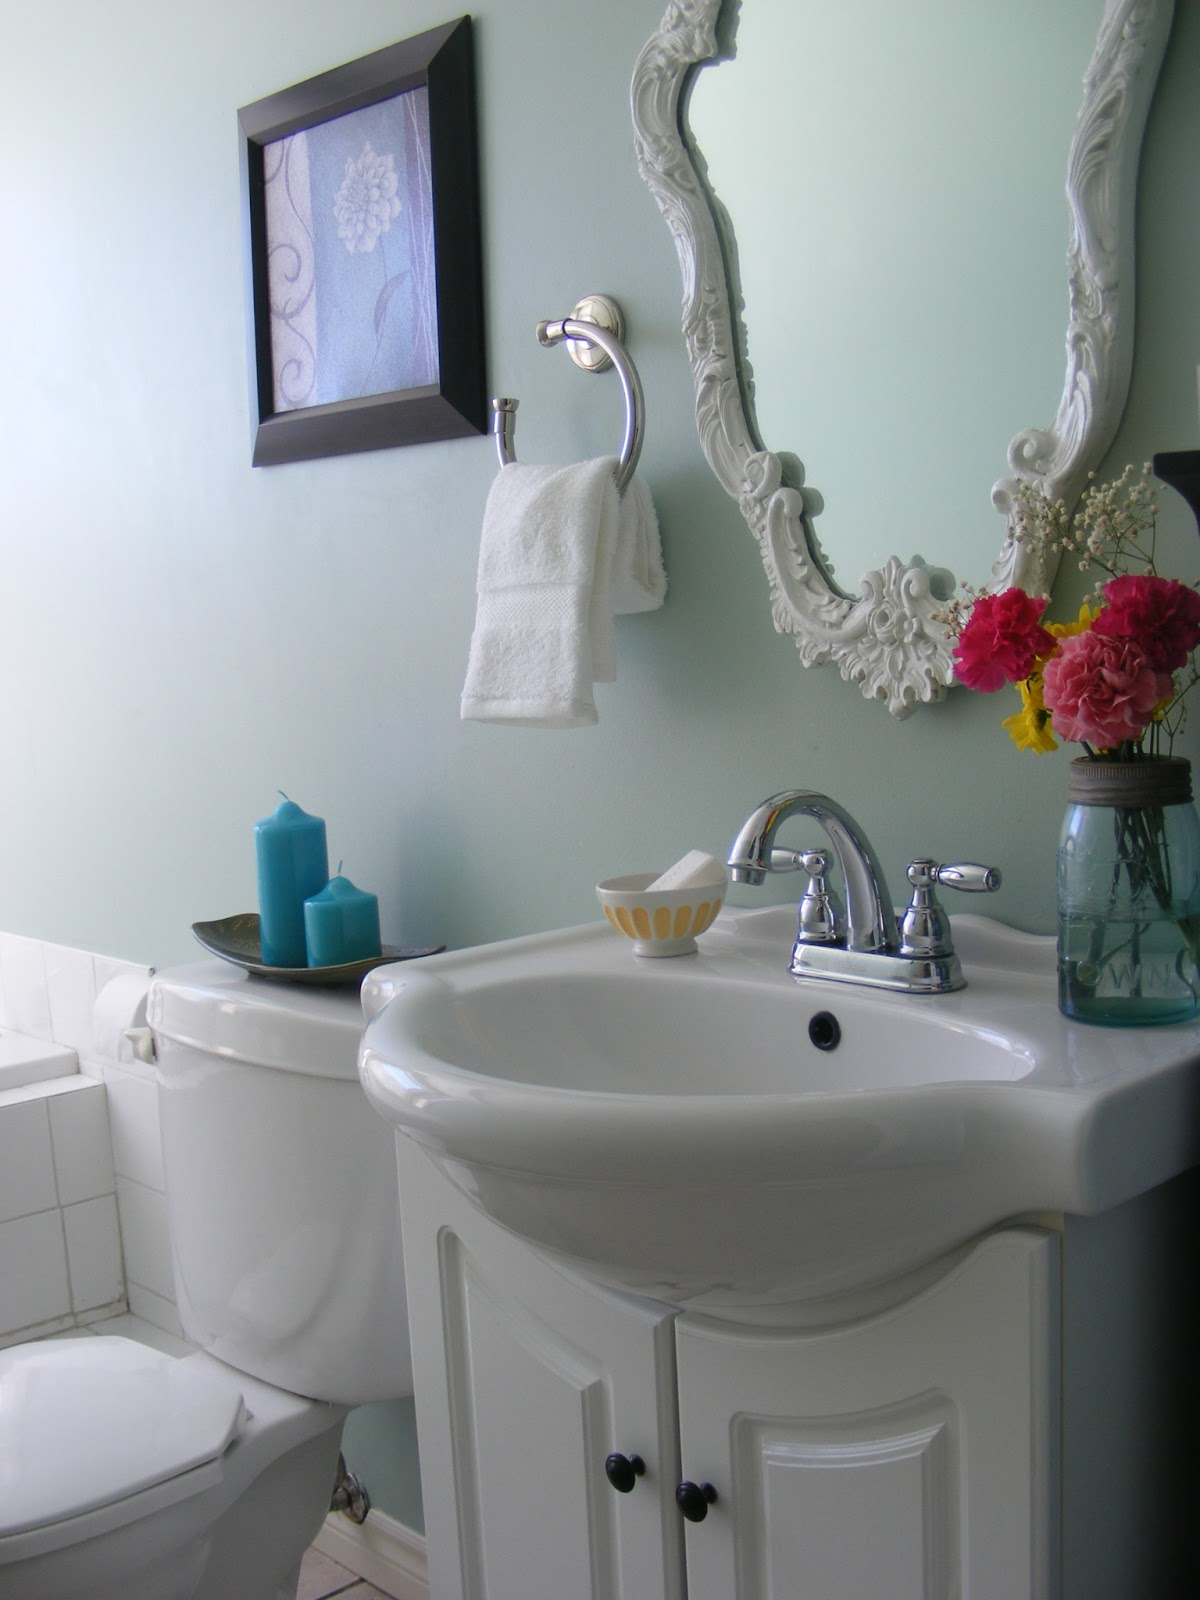 How to have an always clean bathroom in 2 minutes a day the complete guide to imperfect homemaking for How to properly clean a bathroom